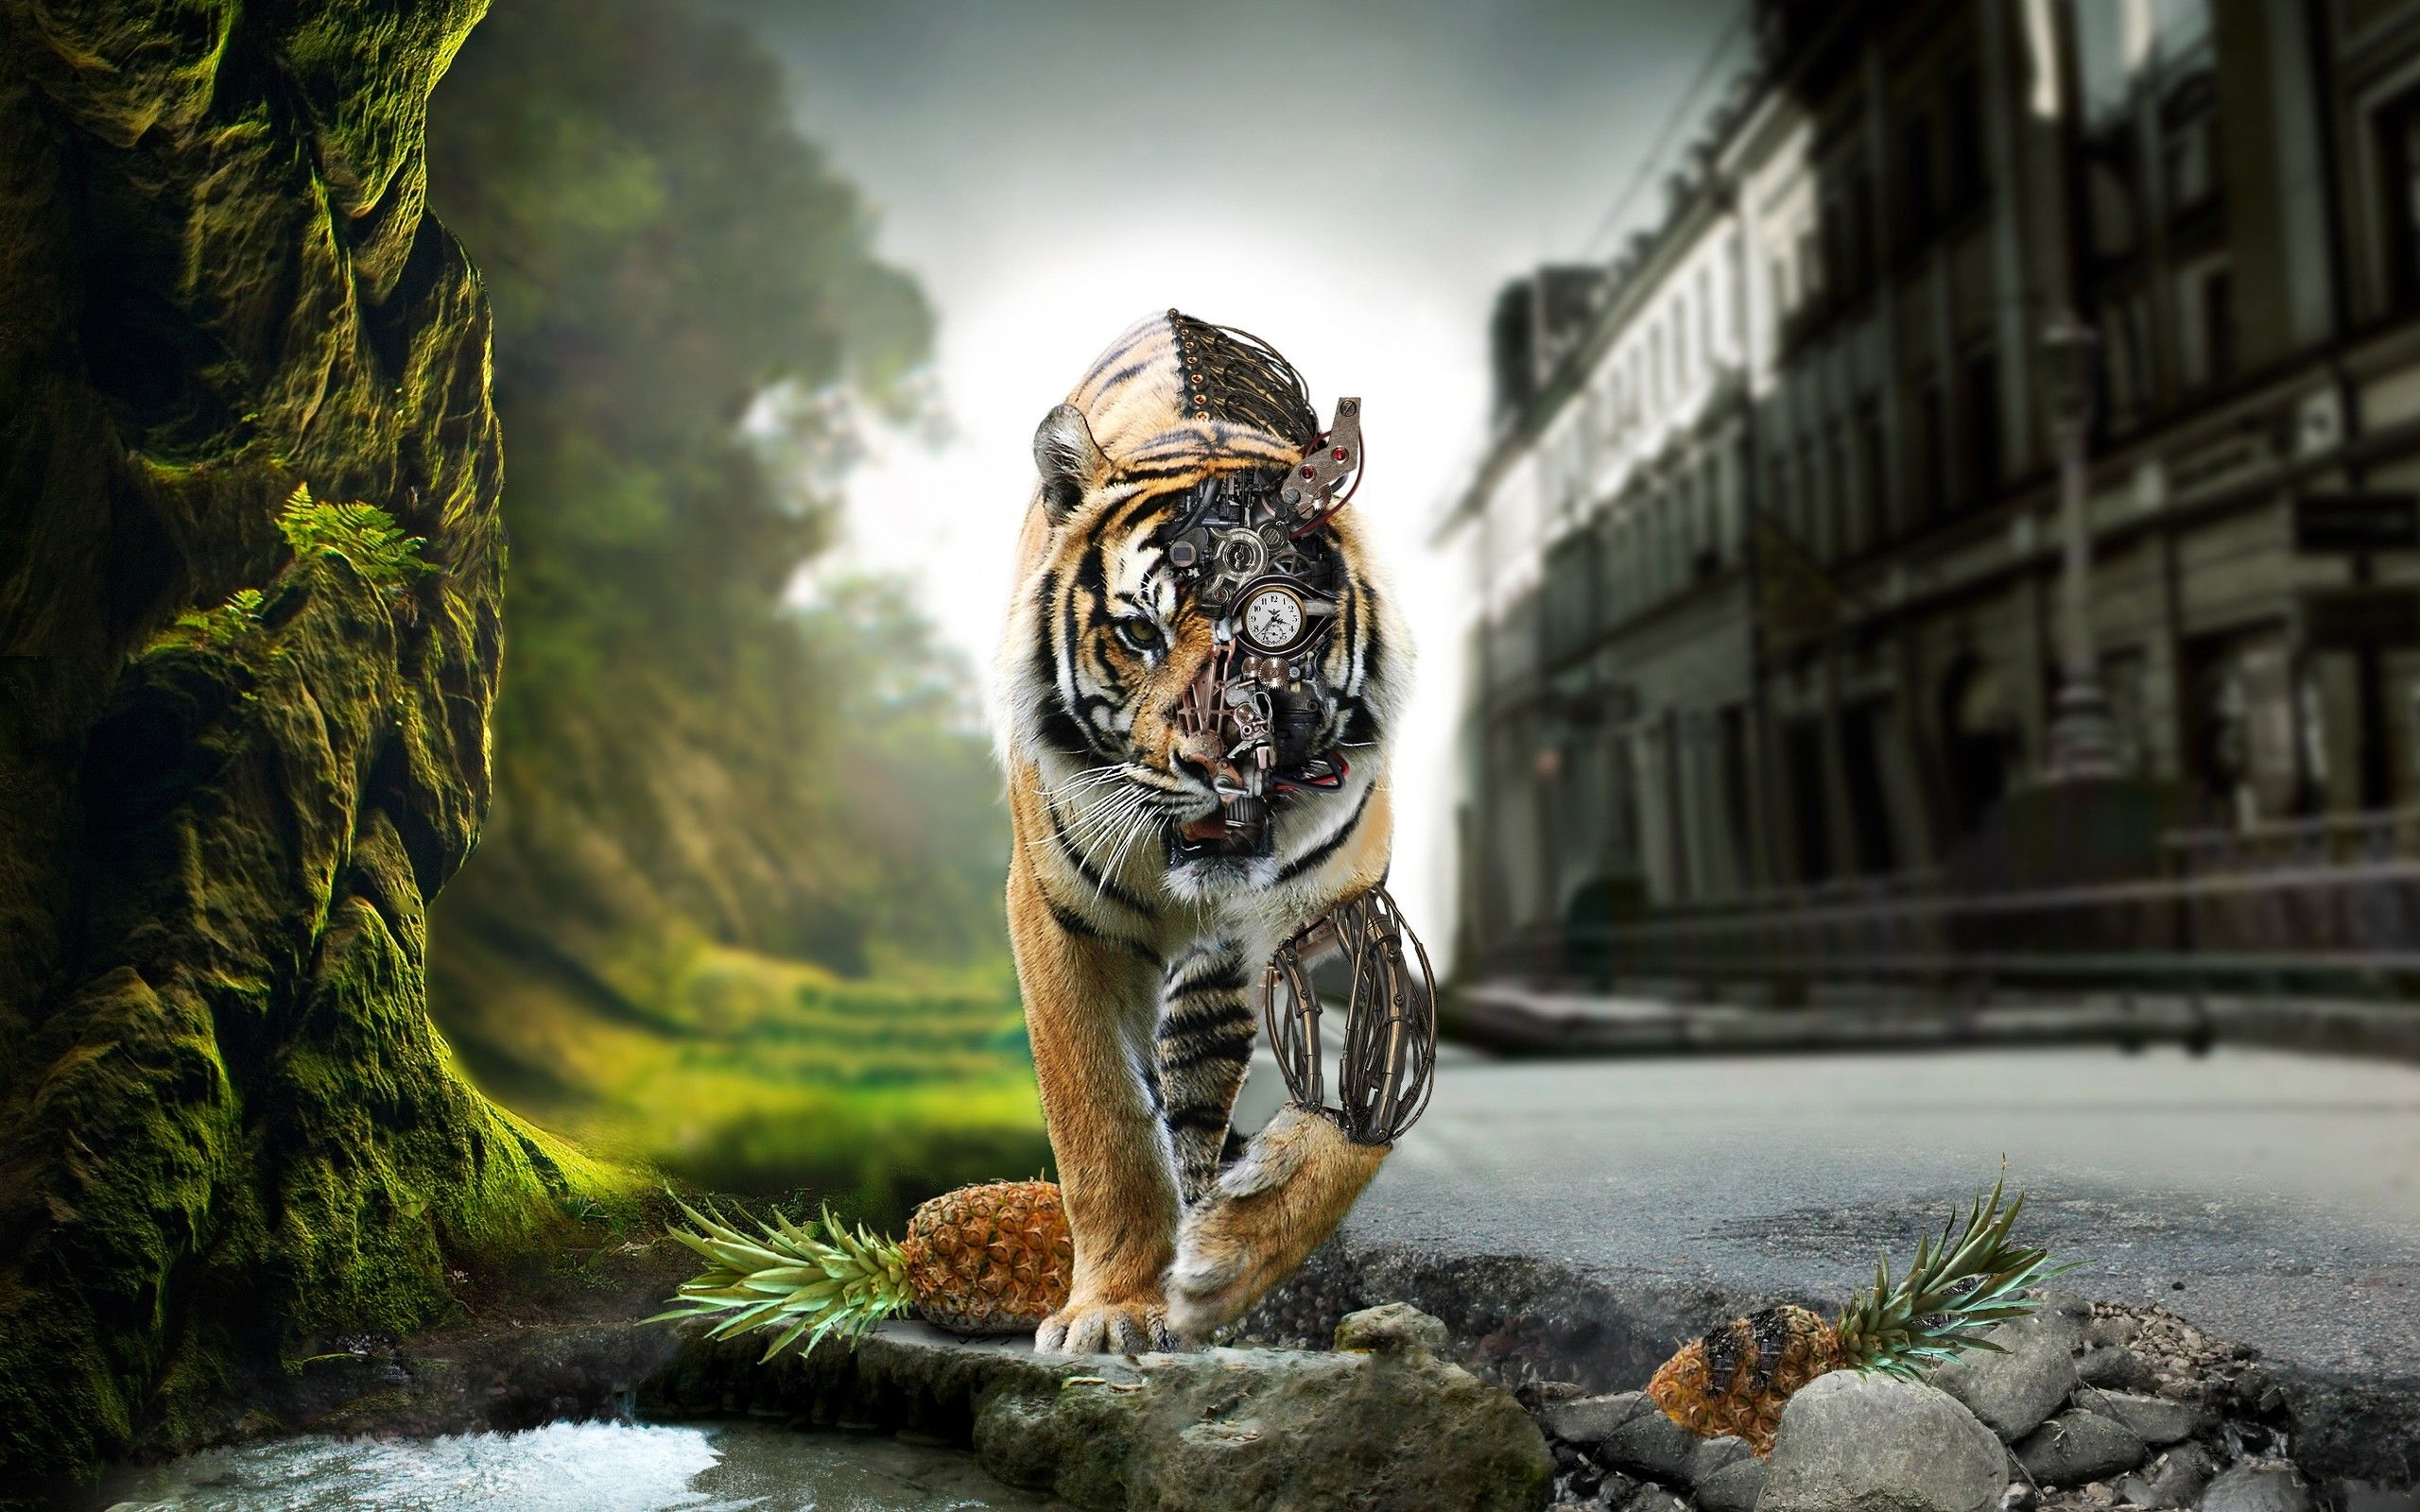 Best Desktop HD Wallpaper Tiger HD wallpapers